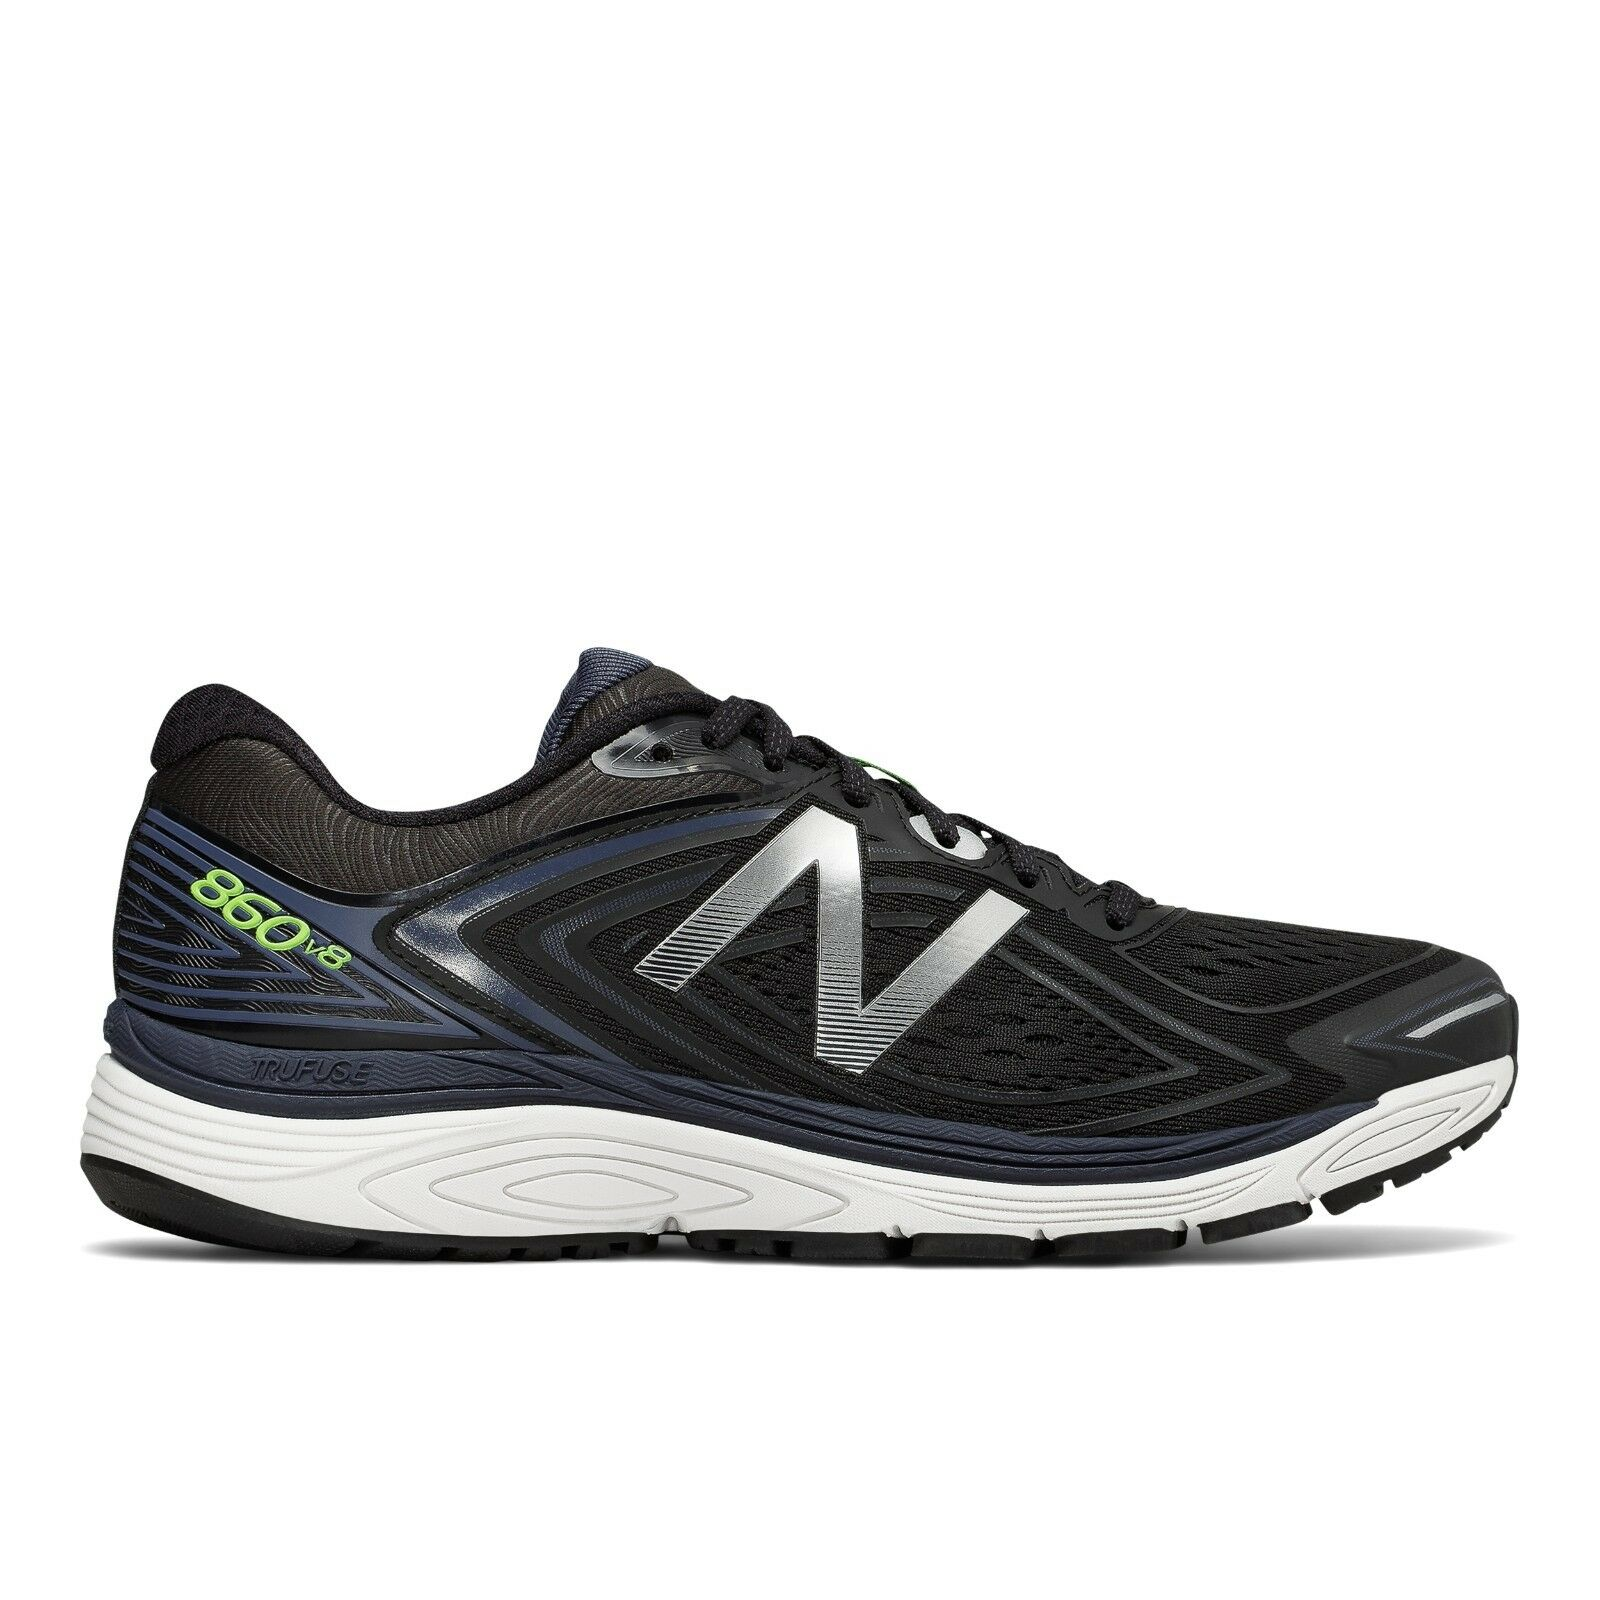 New Balance Men's M860BW8 860v8 Black with Thunder Stability Sneaker Shoes